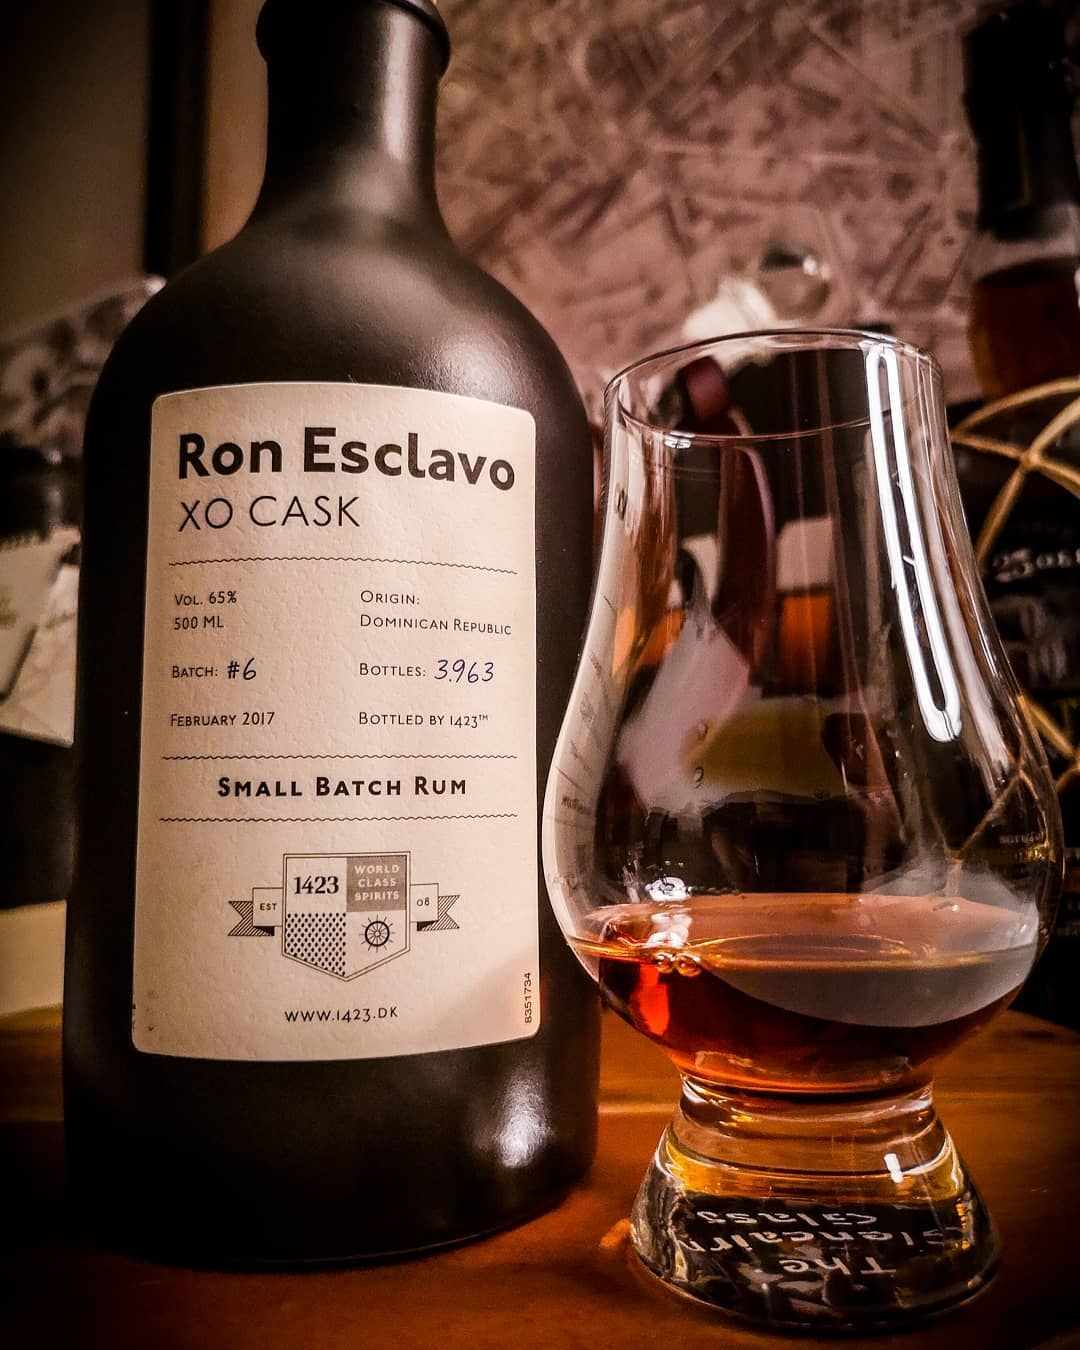 Pin by Anthony FARINAS on Spirits Rum, Man bars, Mixologist